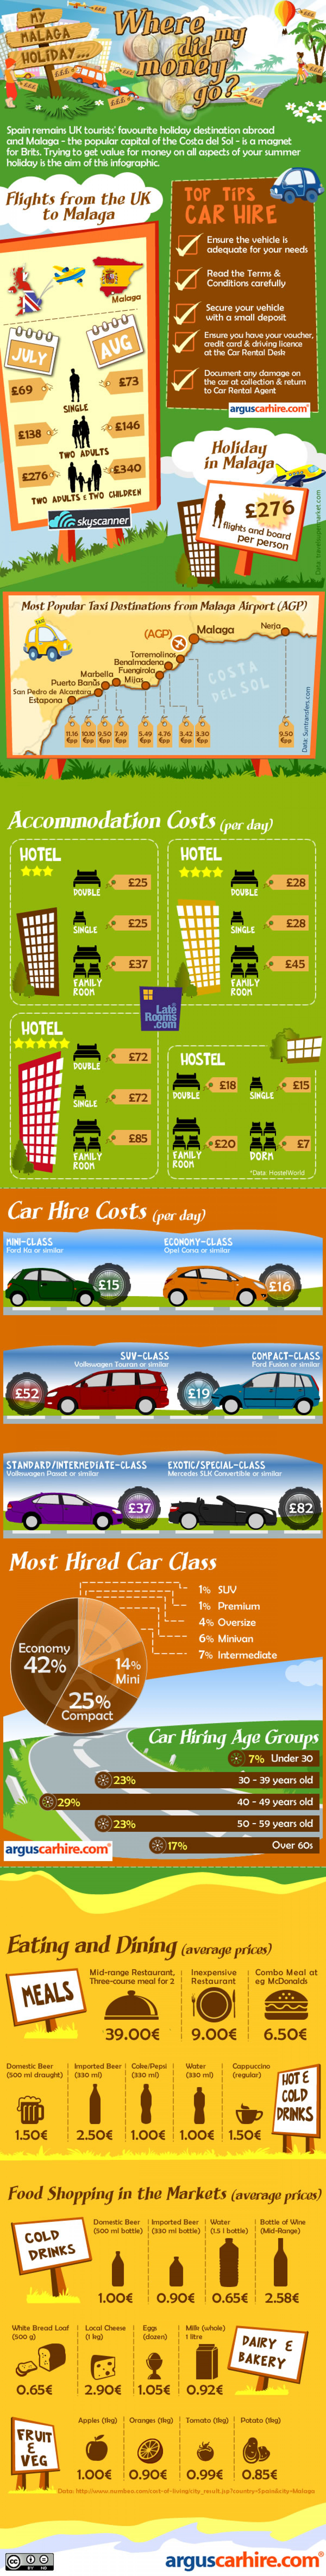 My Malaga Holiday – Where Did My Money Go? Infographic